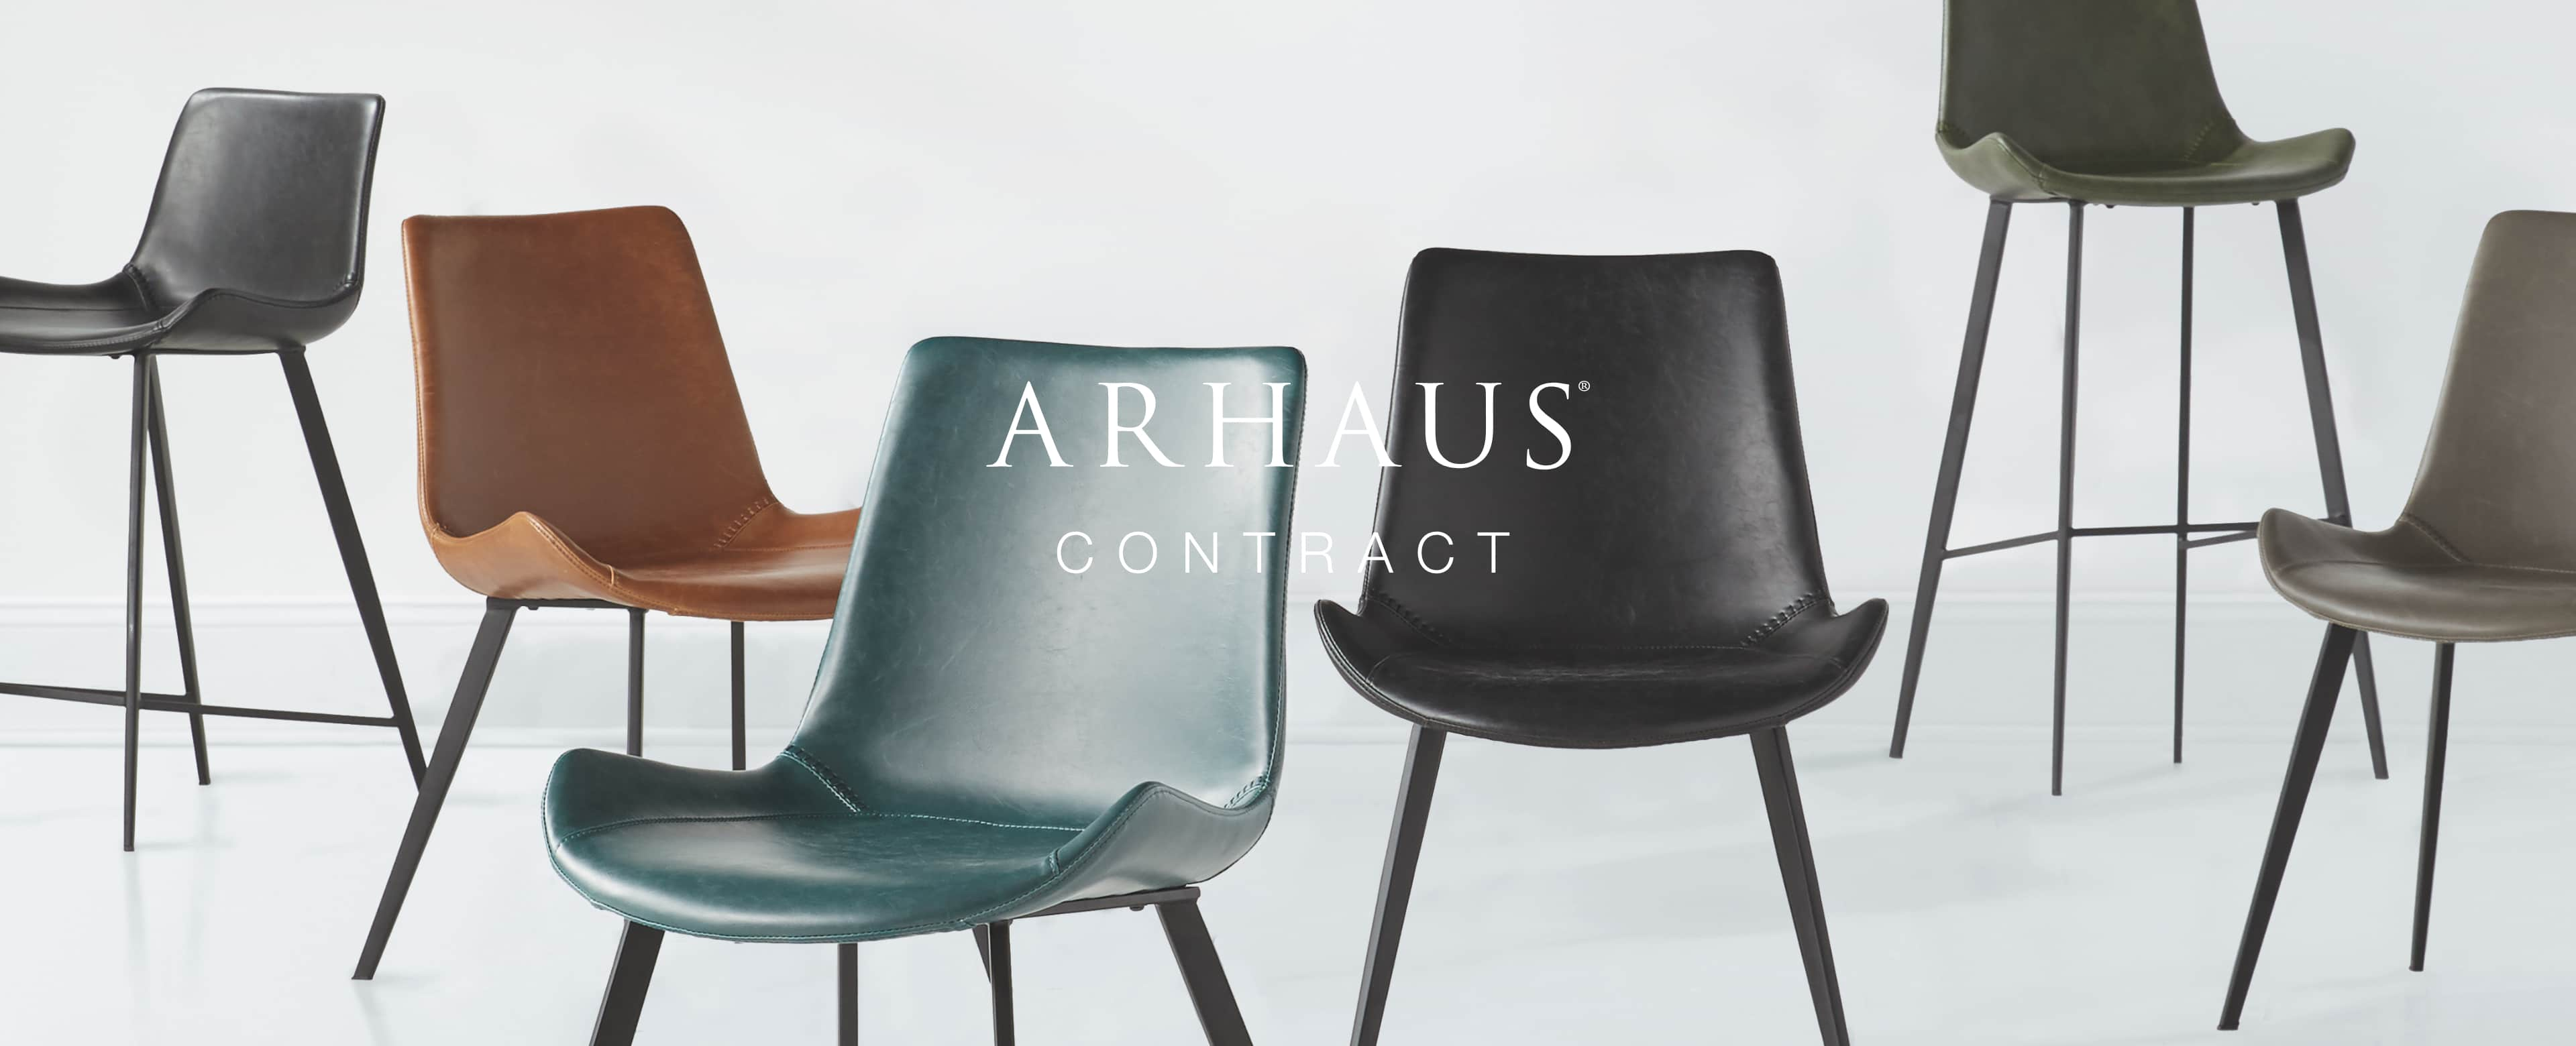 Shop Arhaus for Contract Business